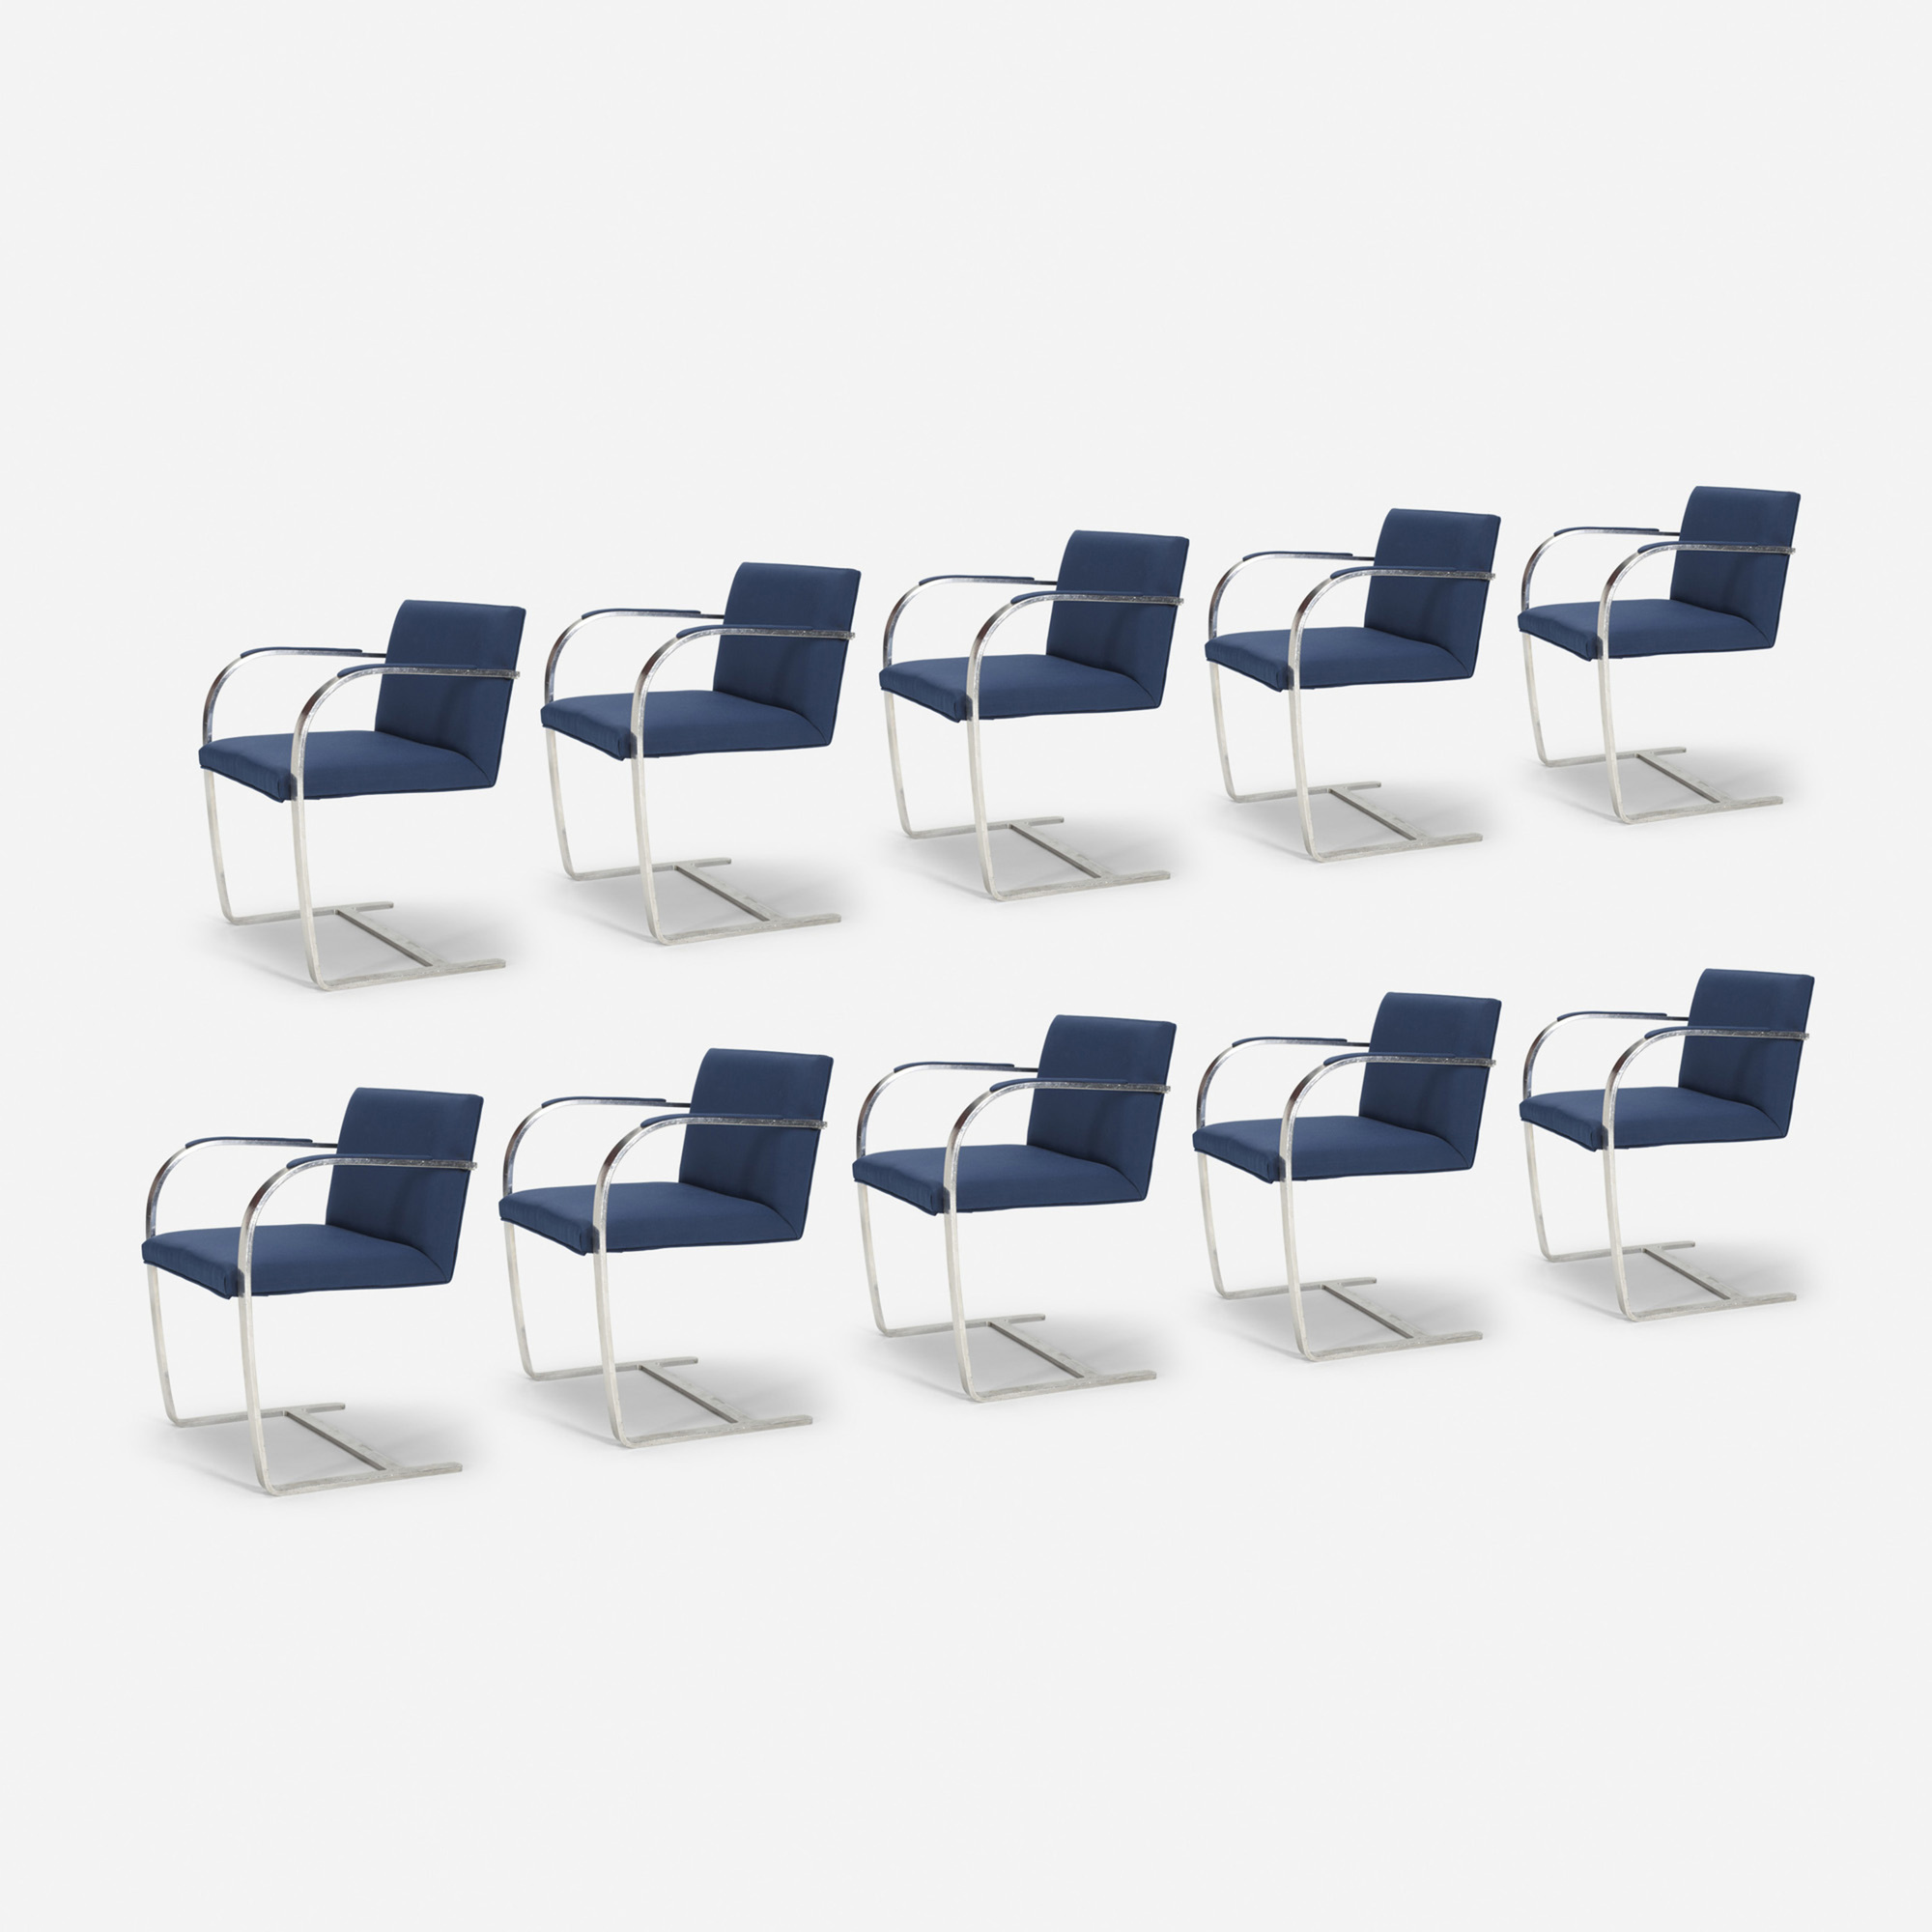 502: Ludwig Mies van der Rohe / Brno chairs from The Four Seasons, set of ten (1 of 1)